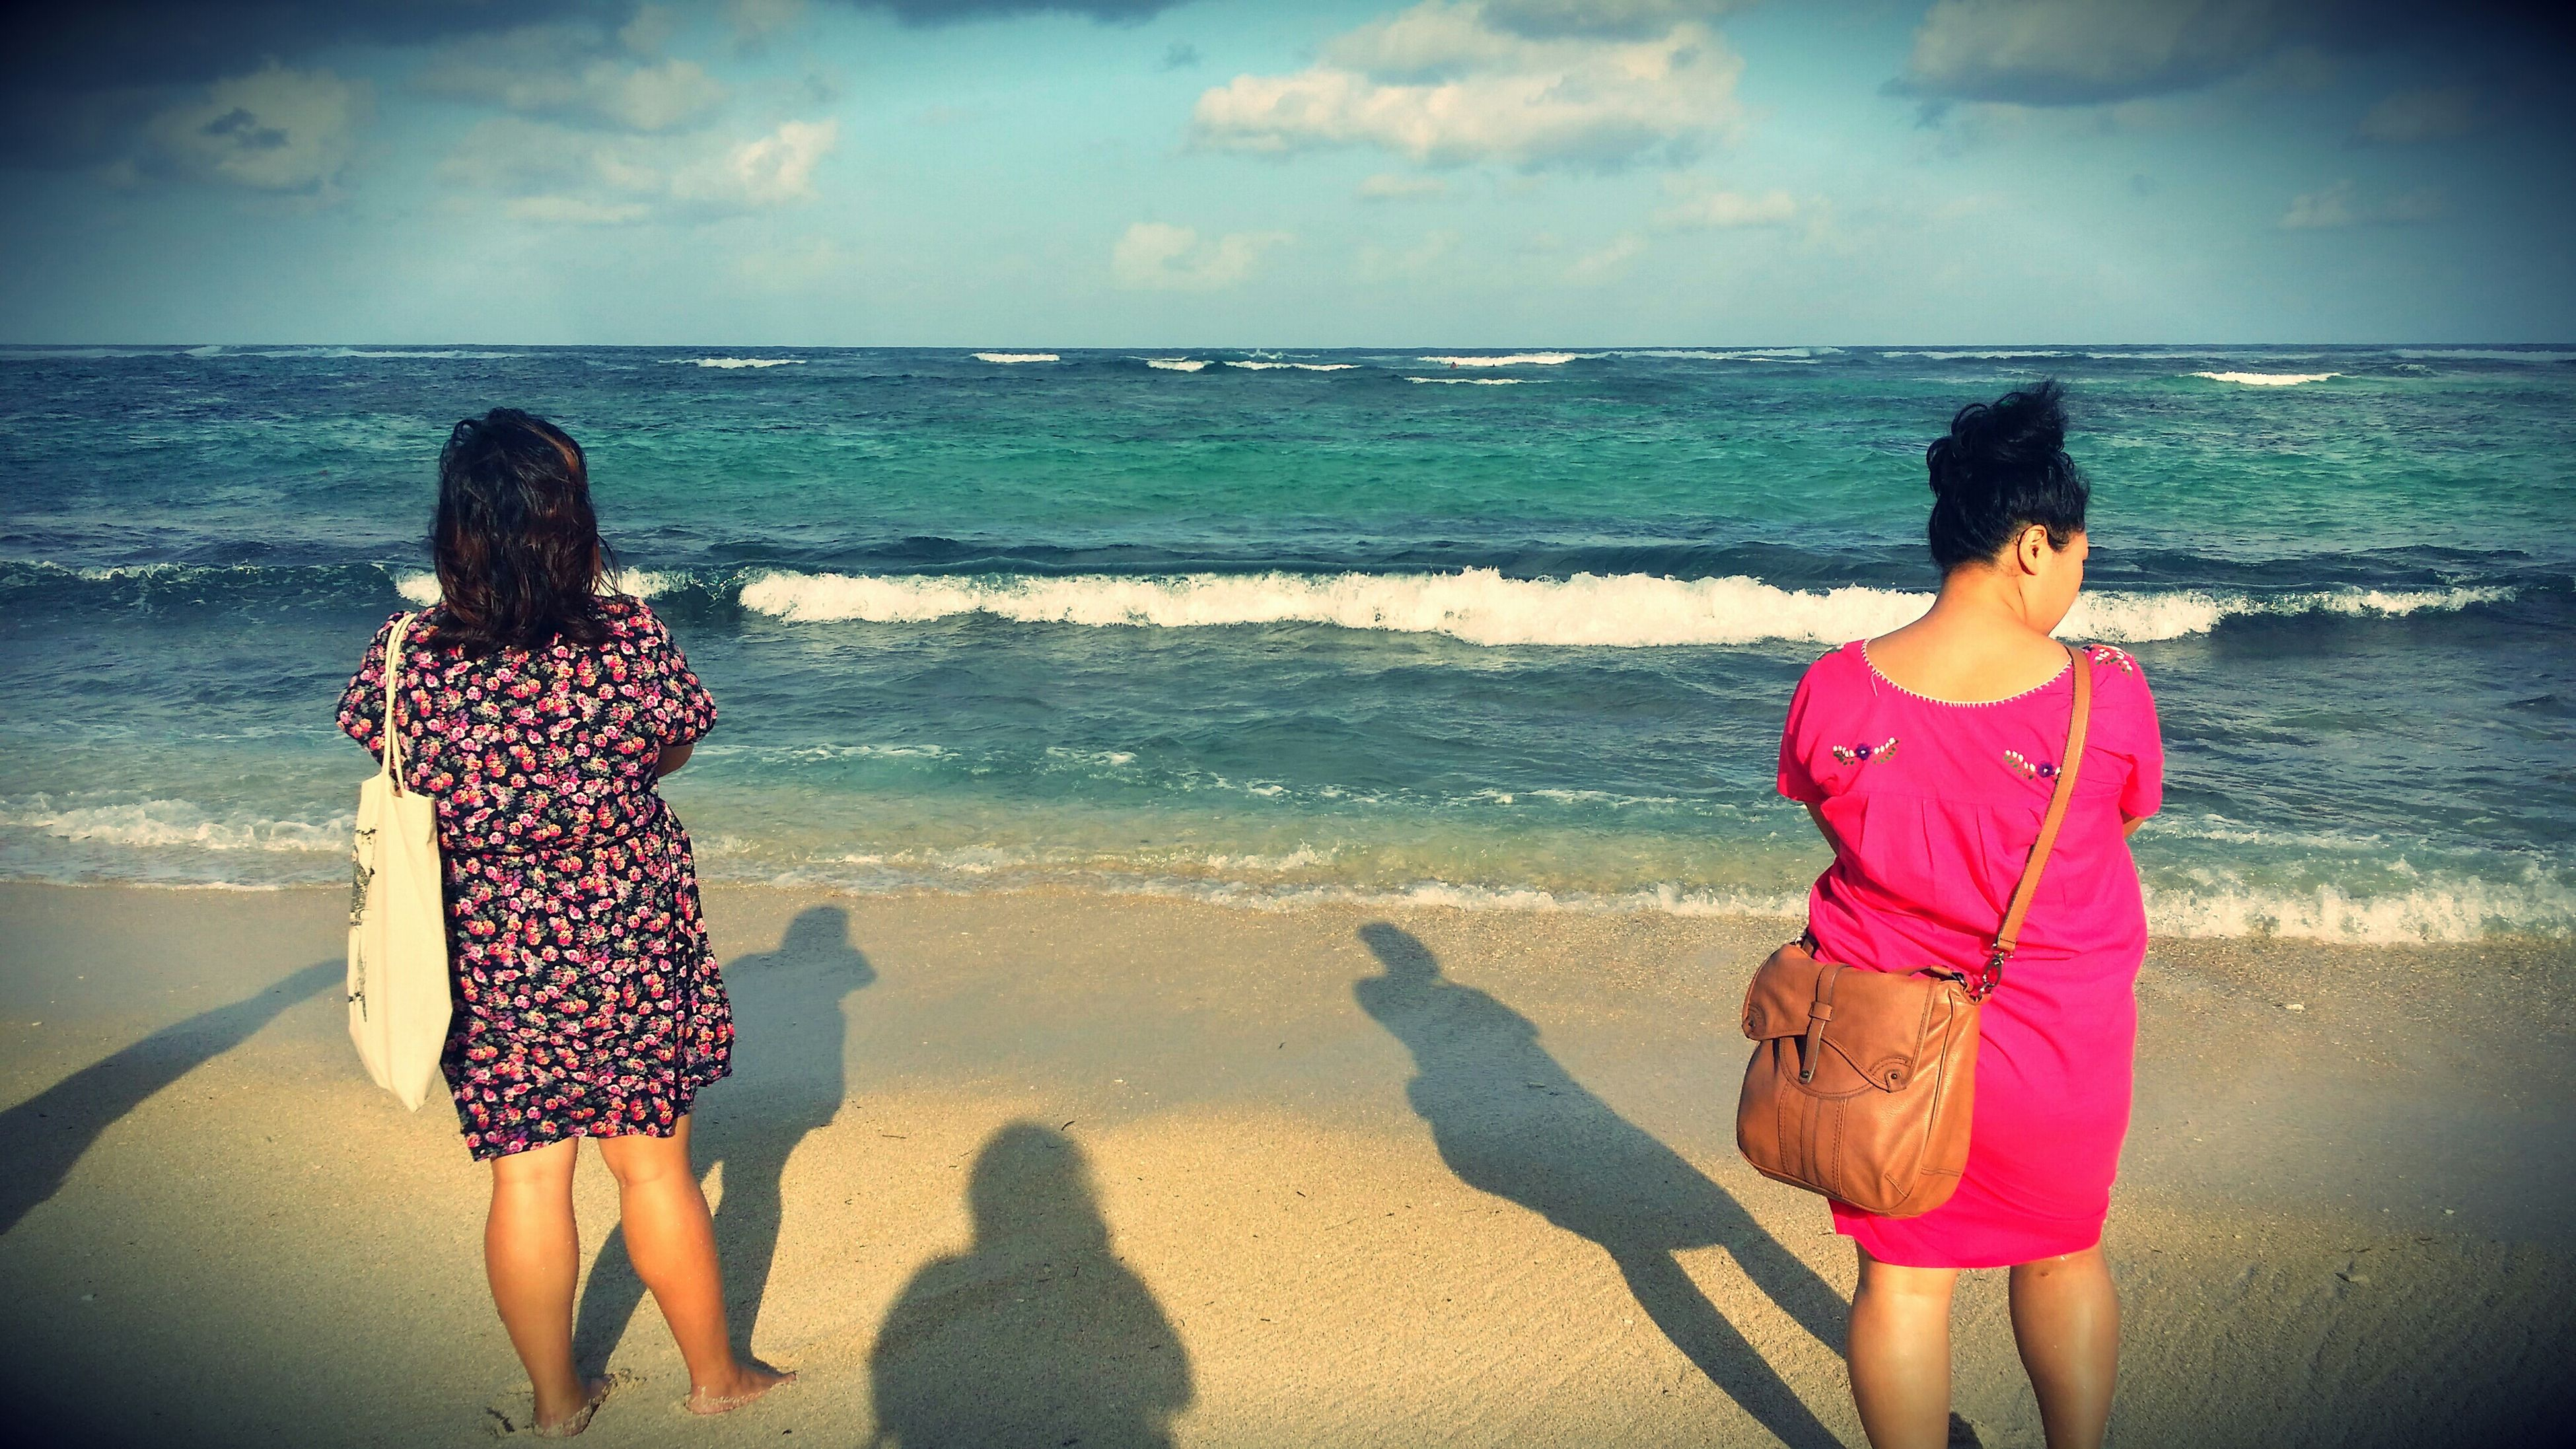 sea, water, beach, lifestyles, sky, horizon over water, leisure activity, standing, shore, rear view, full length, togetherness, casual clothing, cloud - sky, love, childhood, bonding, vacations